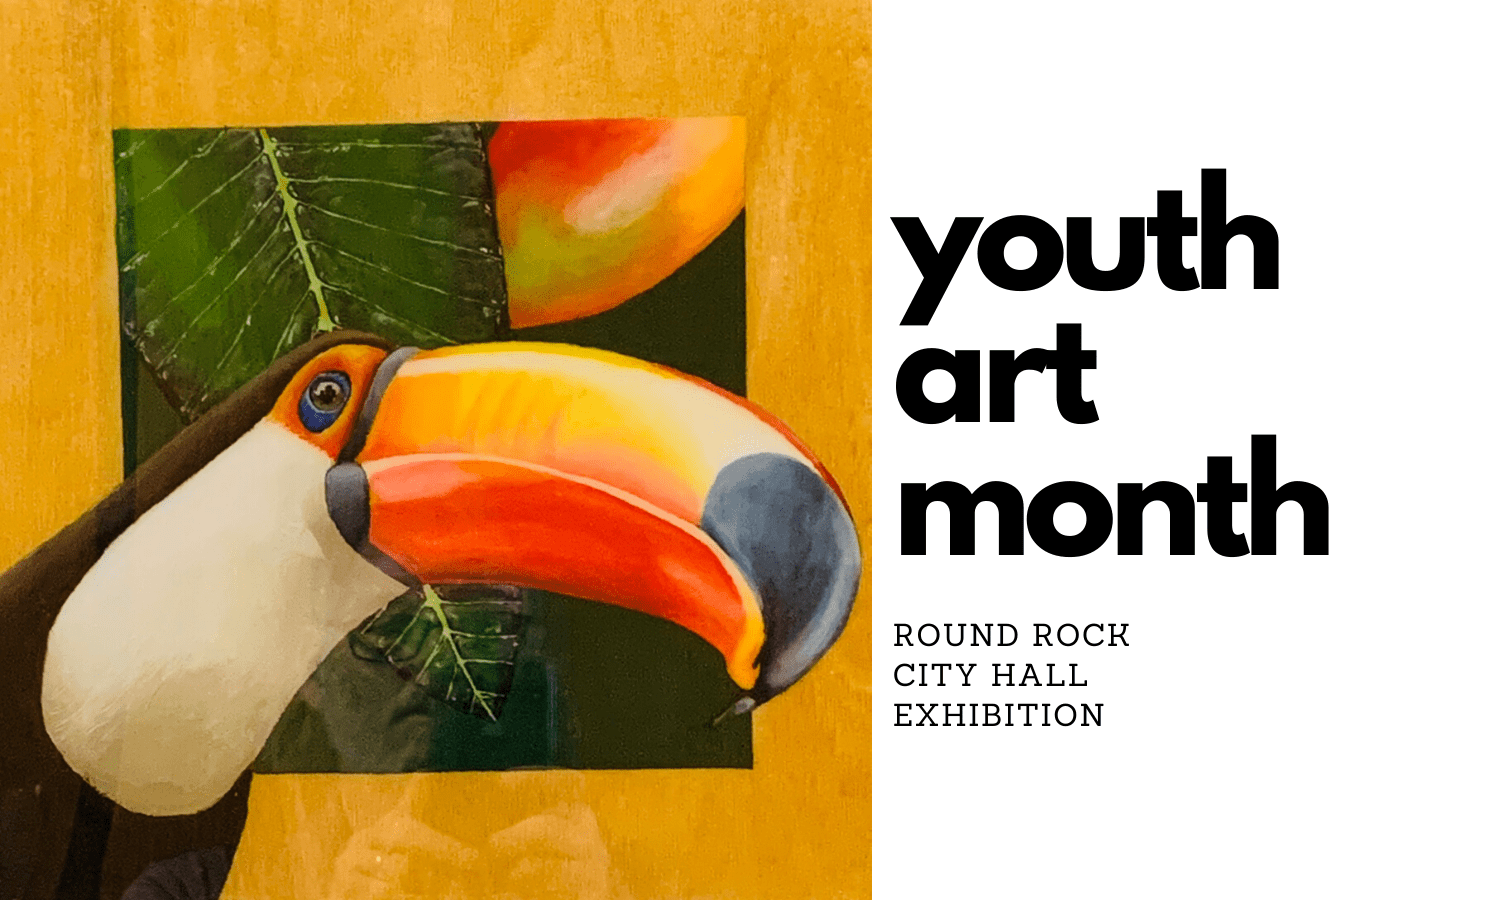 Youth Art Month Exhibition @ Round Rock City Hall